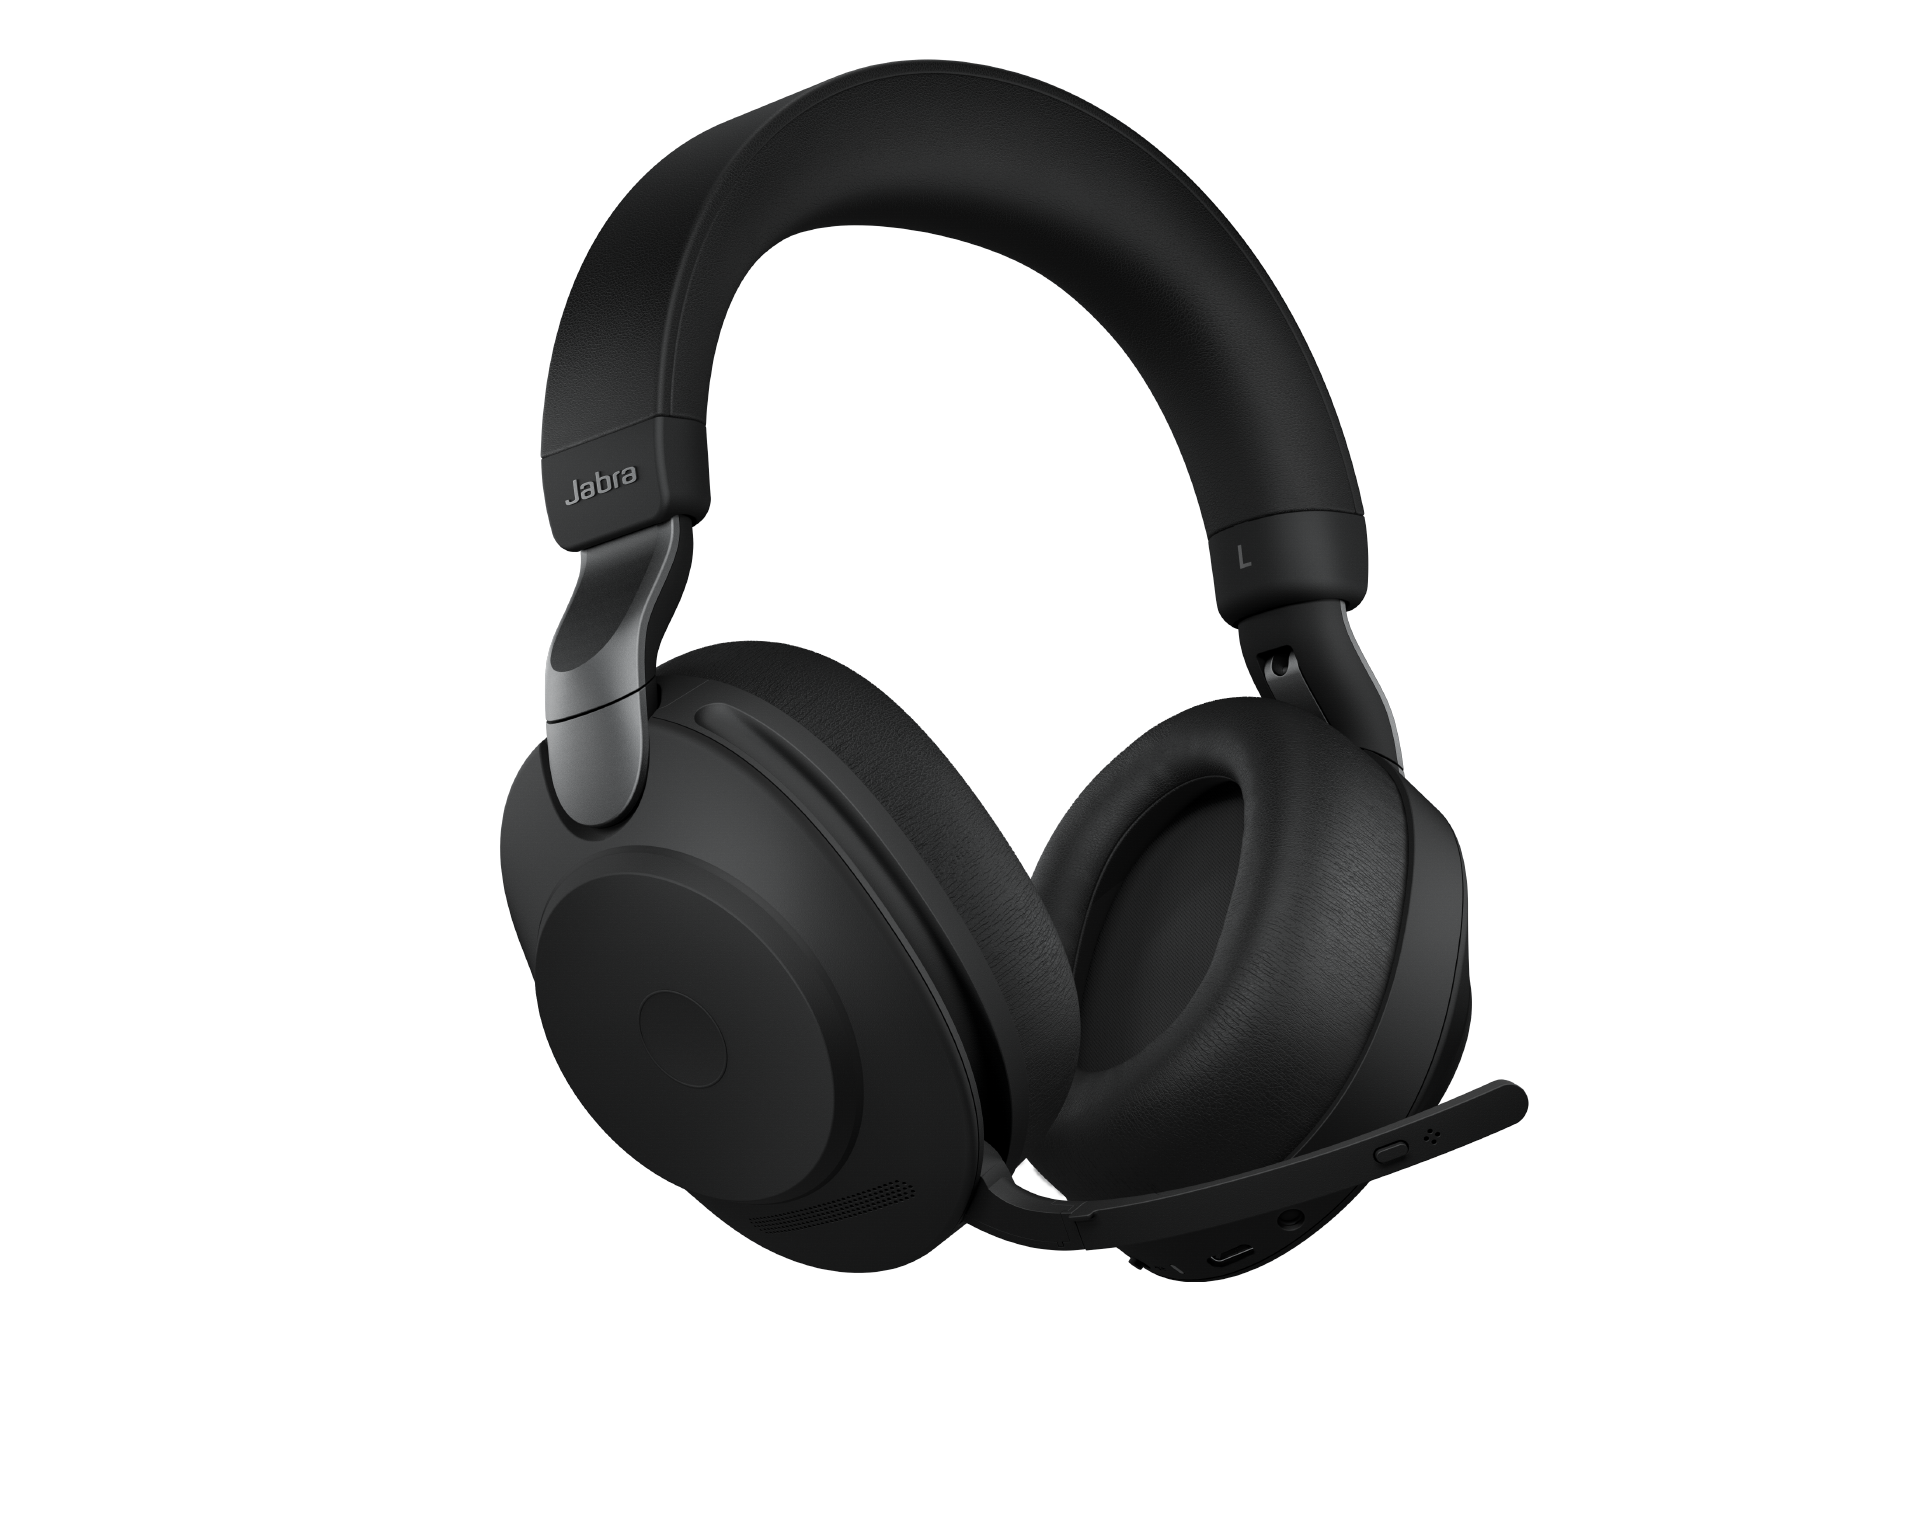 Jabra Evolve2 85 Engineered To Keep You Focused The Best Headset For Concentration And Collaboration